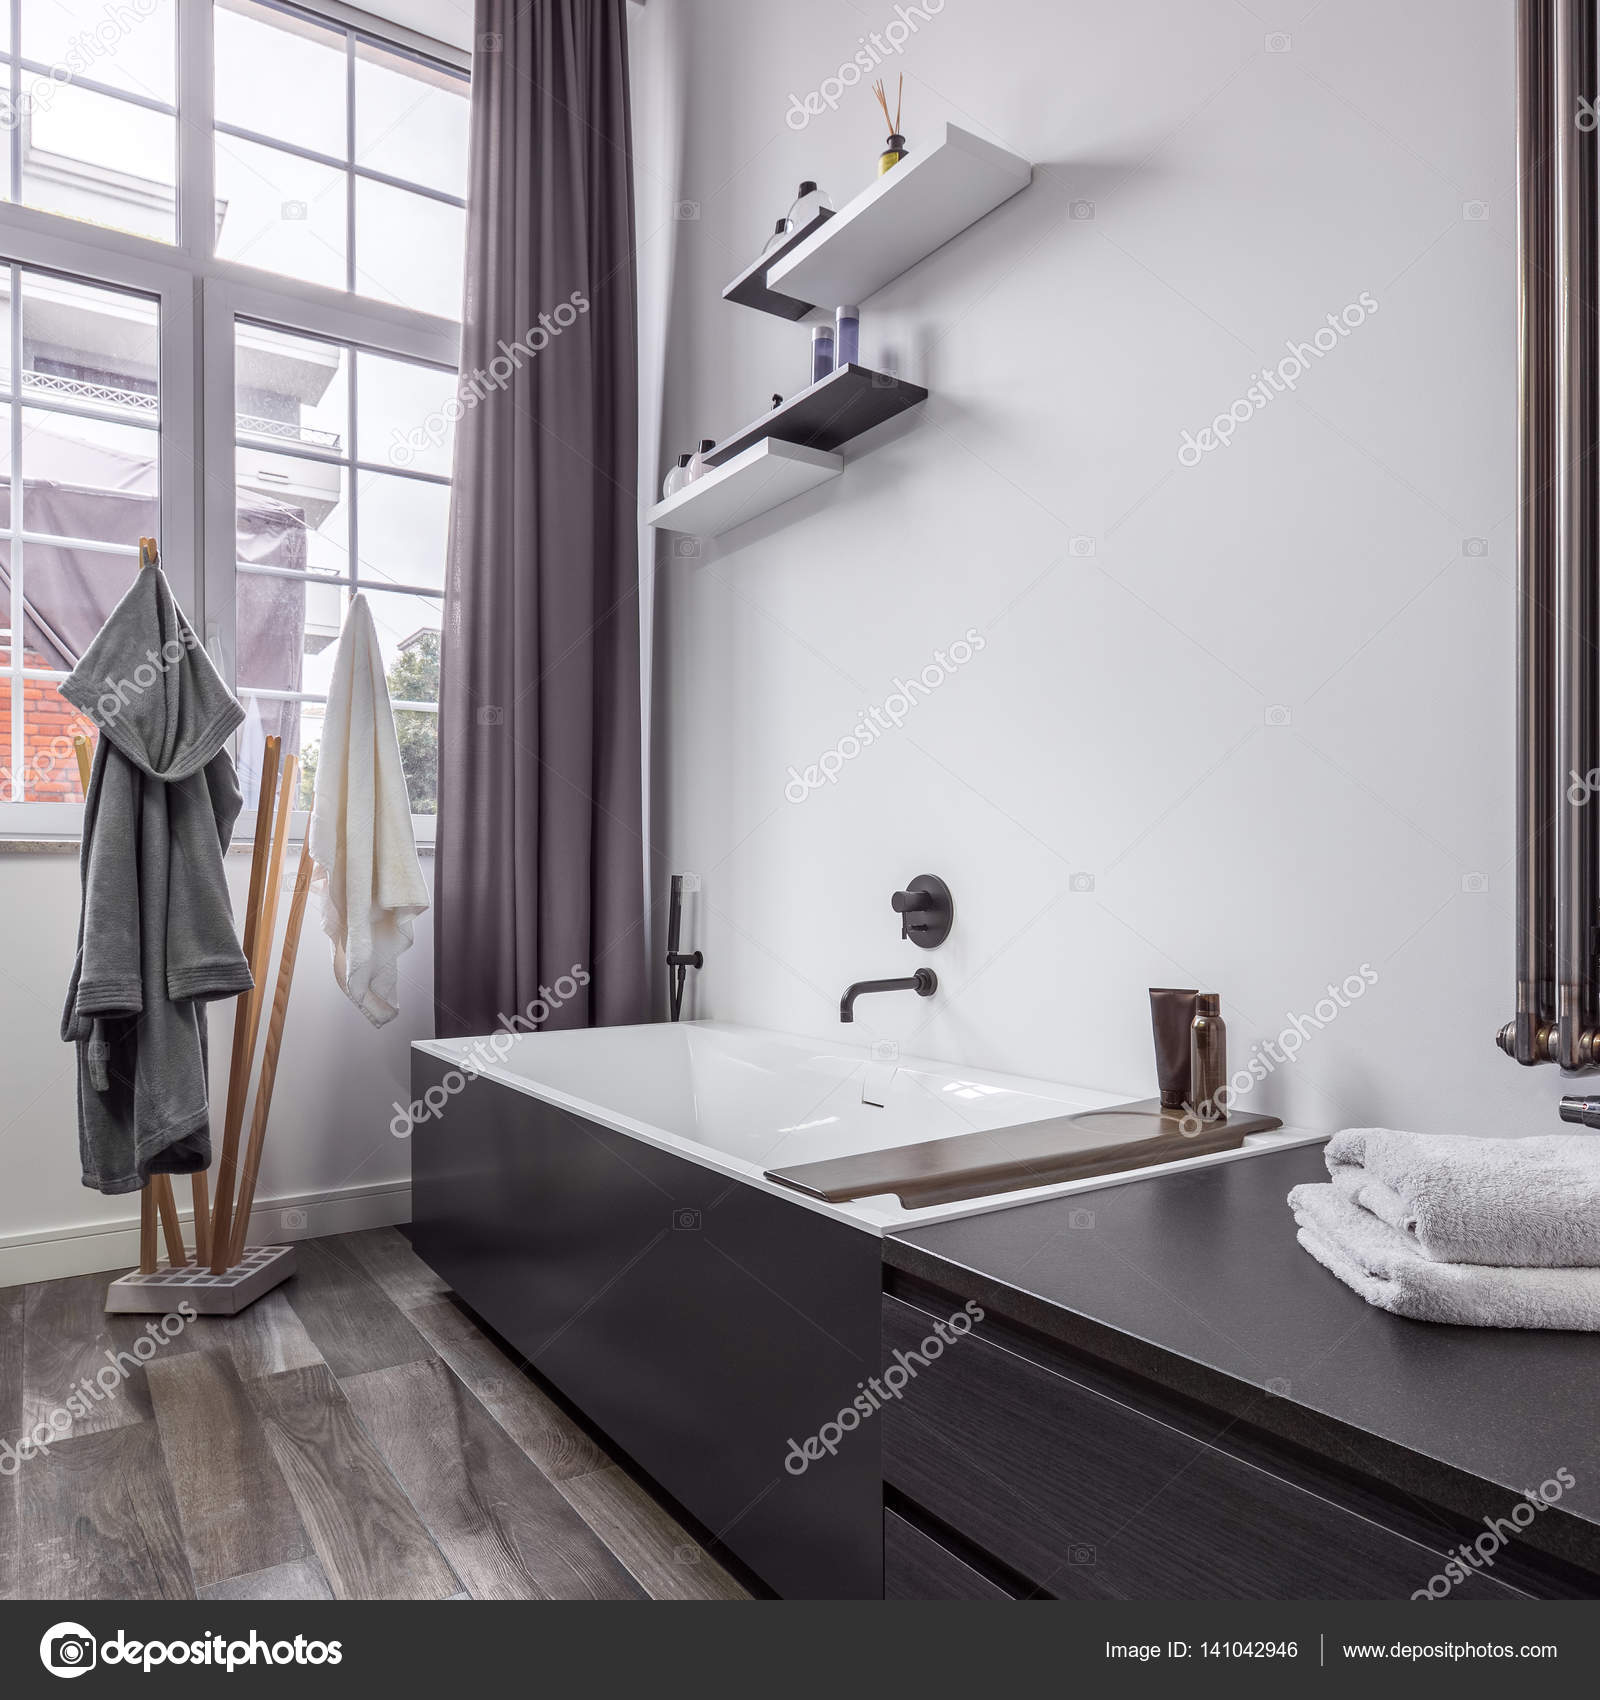 Badezimmer Industrial Badezimmer In Industriellem Stil Stockfoto In4mal 141042946